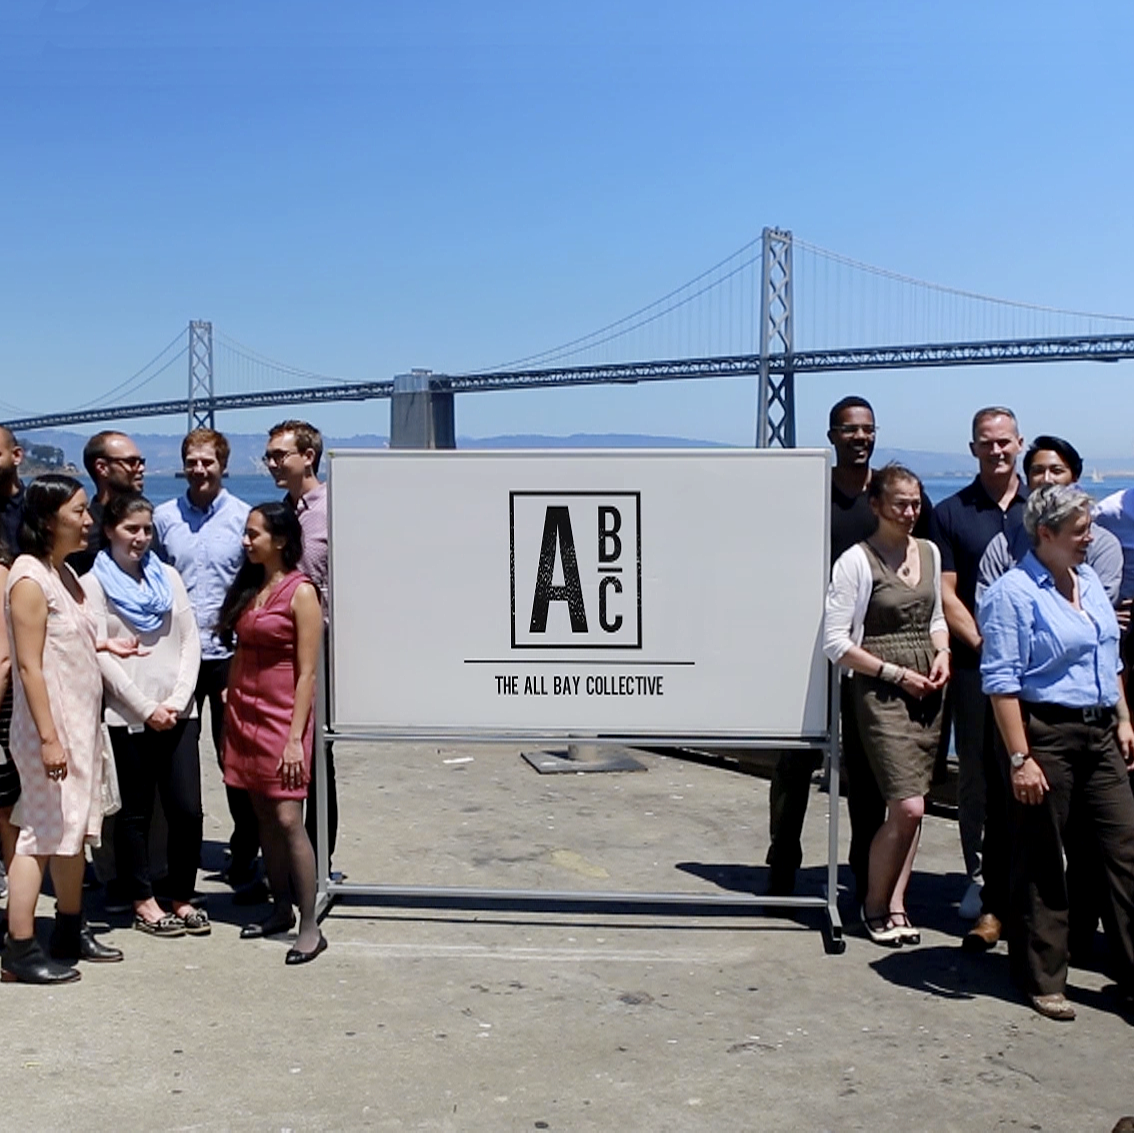 THE ALL BAY COLLECTIVE  - AECOM